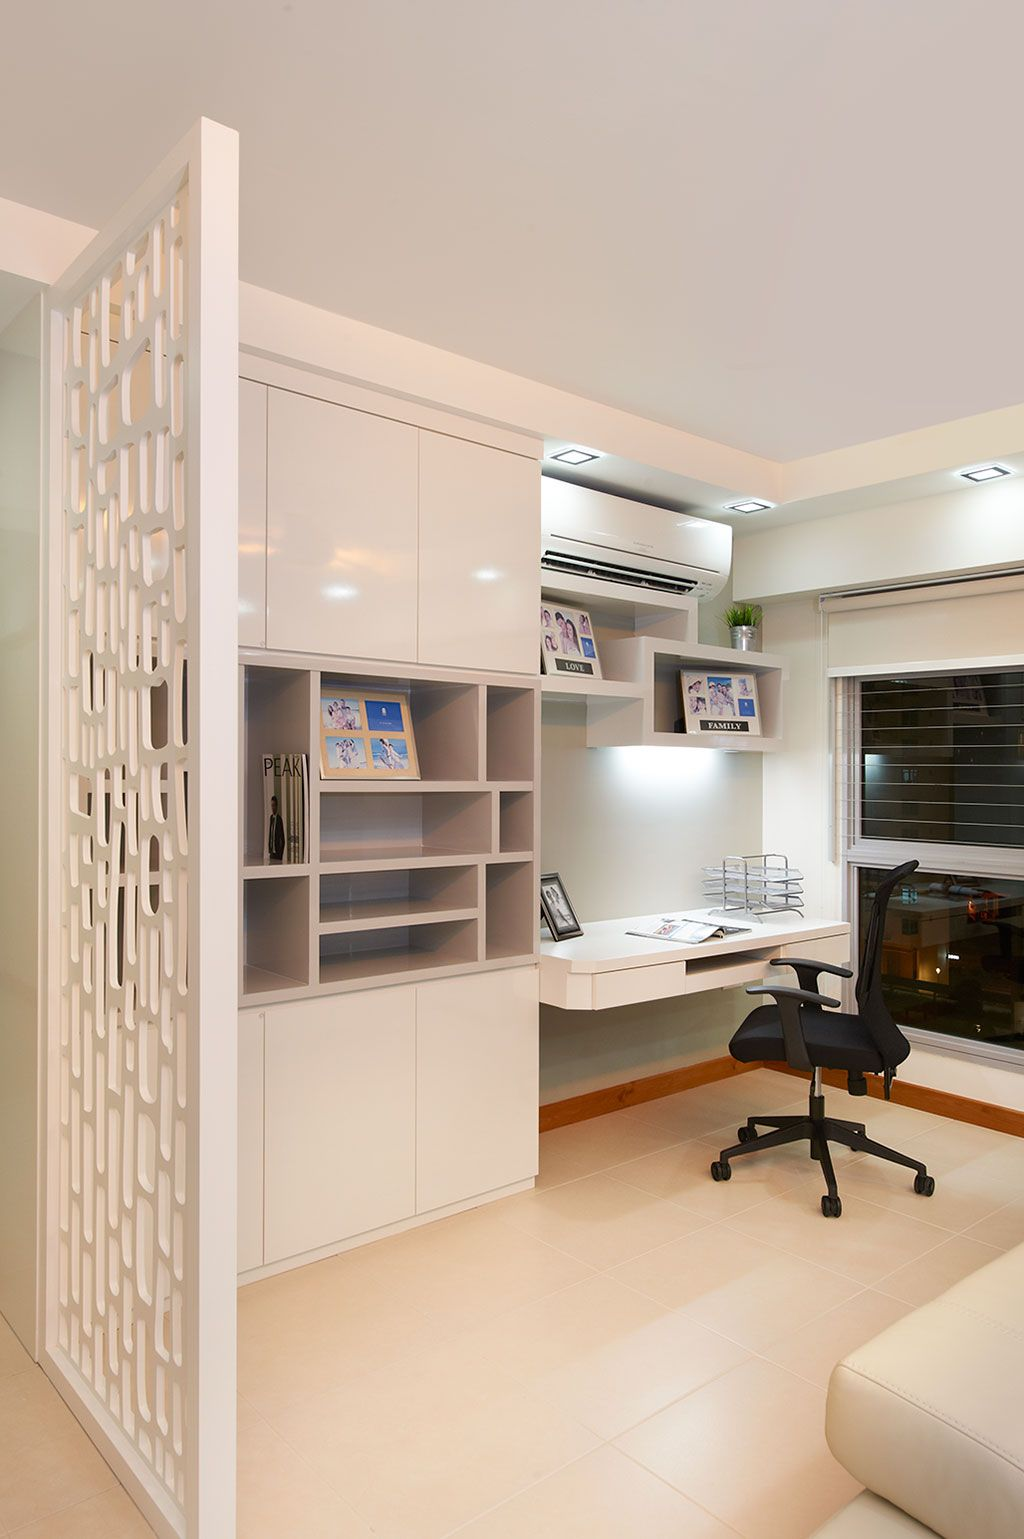 Hdb Study Room Design Ideas: Hdb Bedroom Renovation Ideas